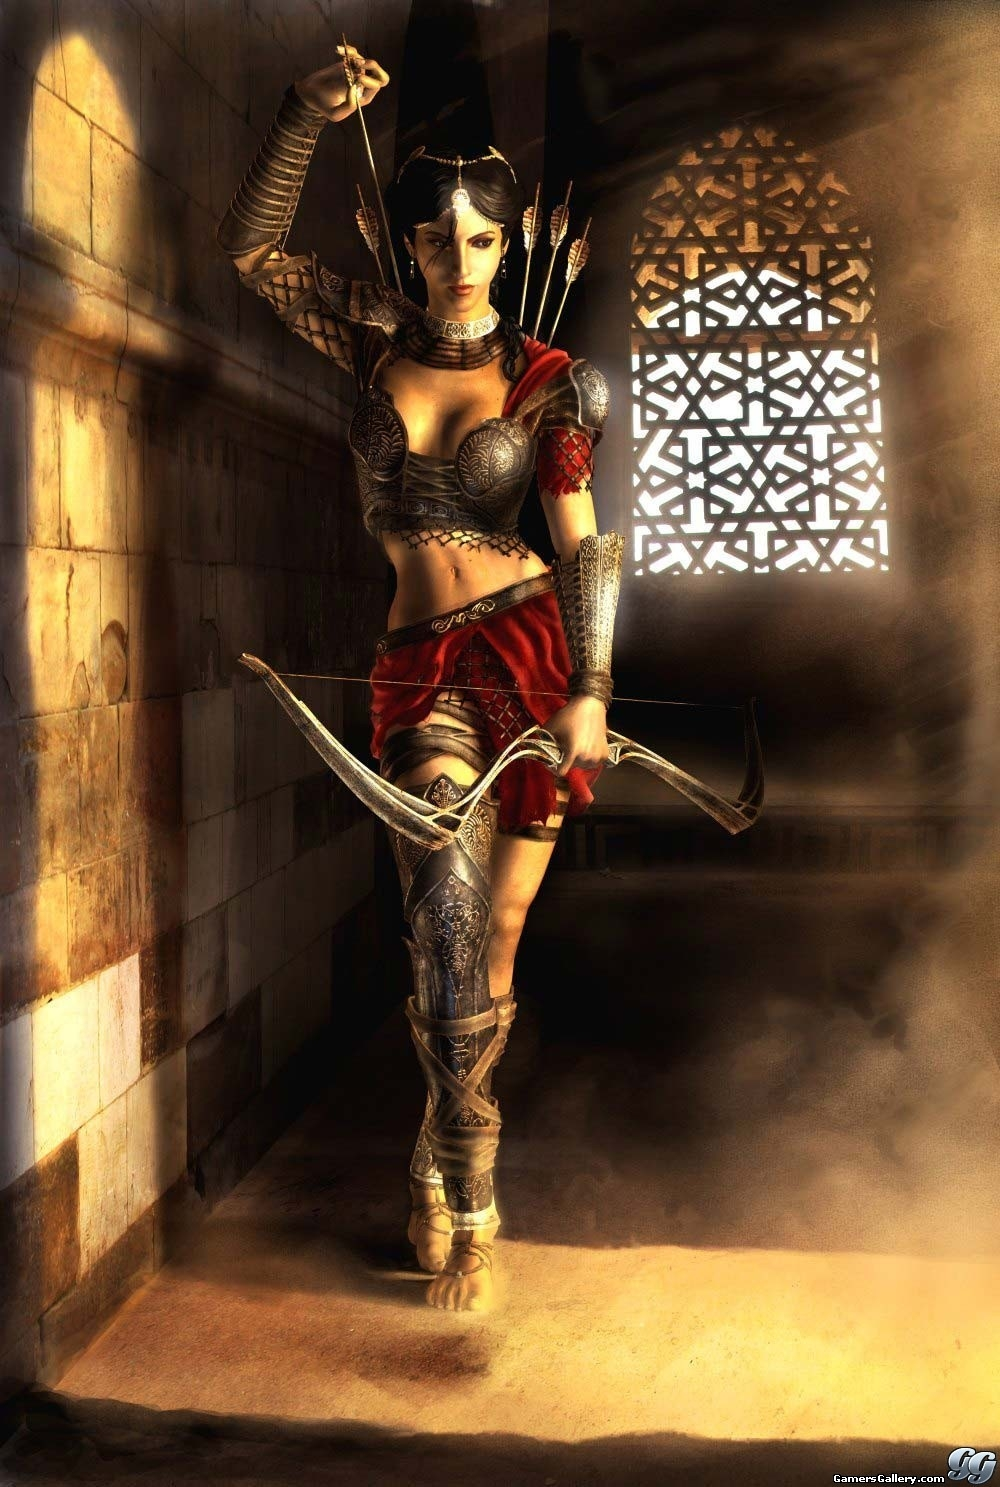 Farah from prince of persia porn pics naked gallery